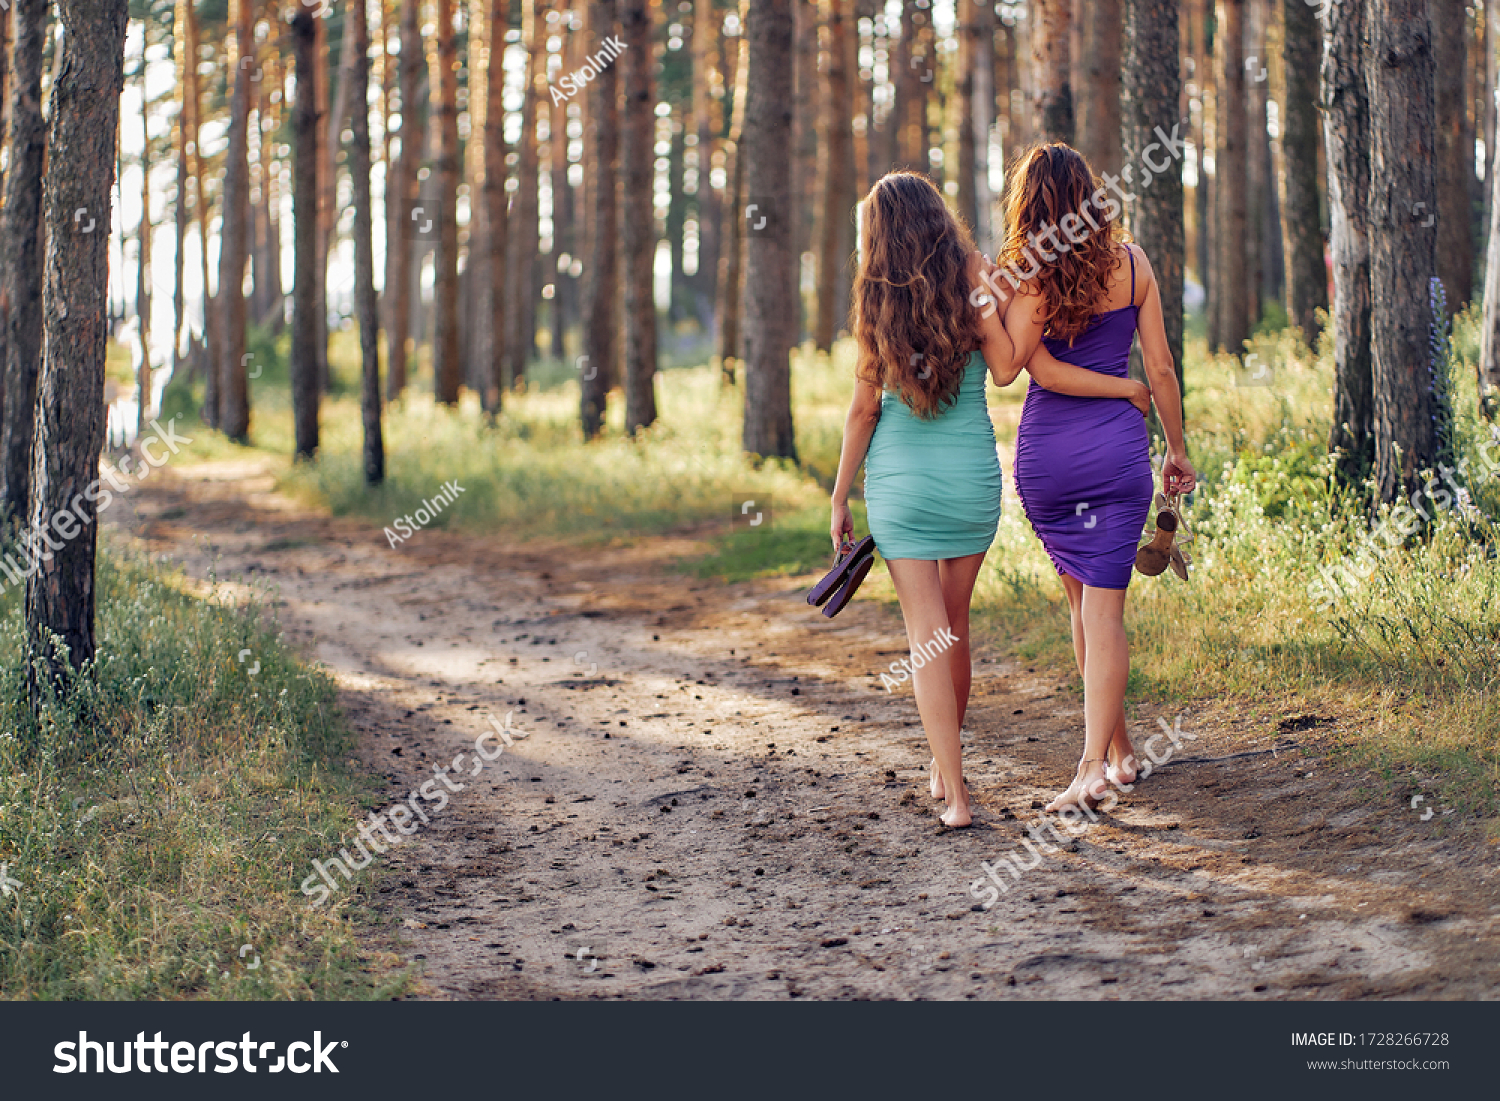 https://image.shutterstock.com/z/stock-photo-two-girls-leave-us-they-walk-barefoot-in-a-hug-along-a-forest-path-1728266728.jpg